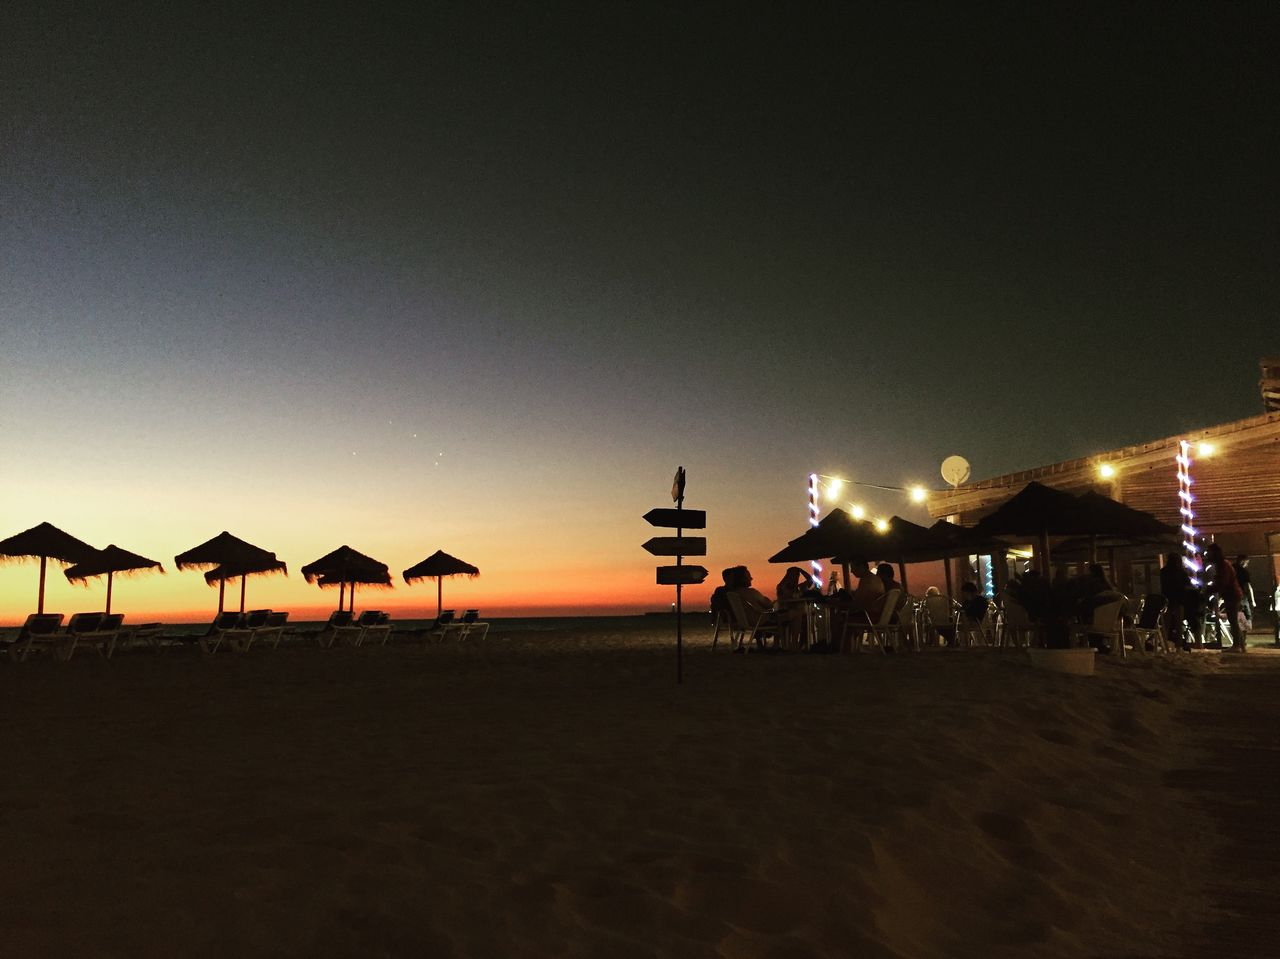 sky, beach, land, sunset, group of people, copy space, nature, sand, illuminated, silhouette, architecture, incidental people, real people, scenics - nature, built structure, large group of people, crowd, night, outdoors, clear sky